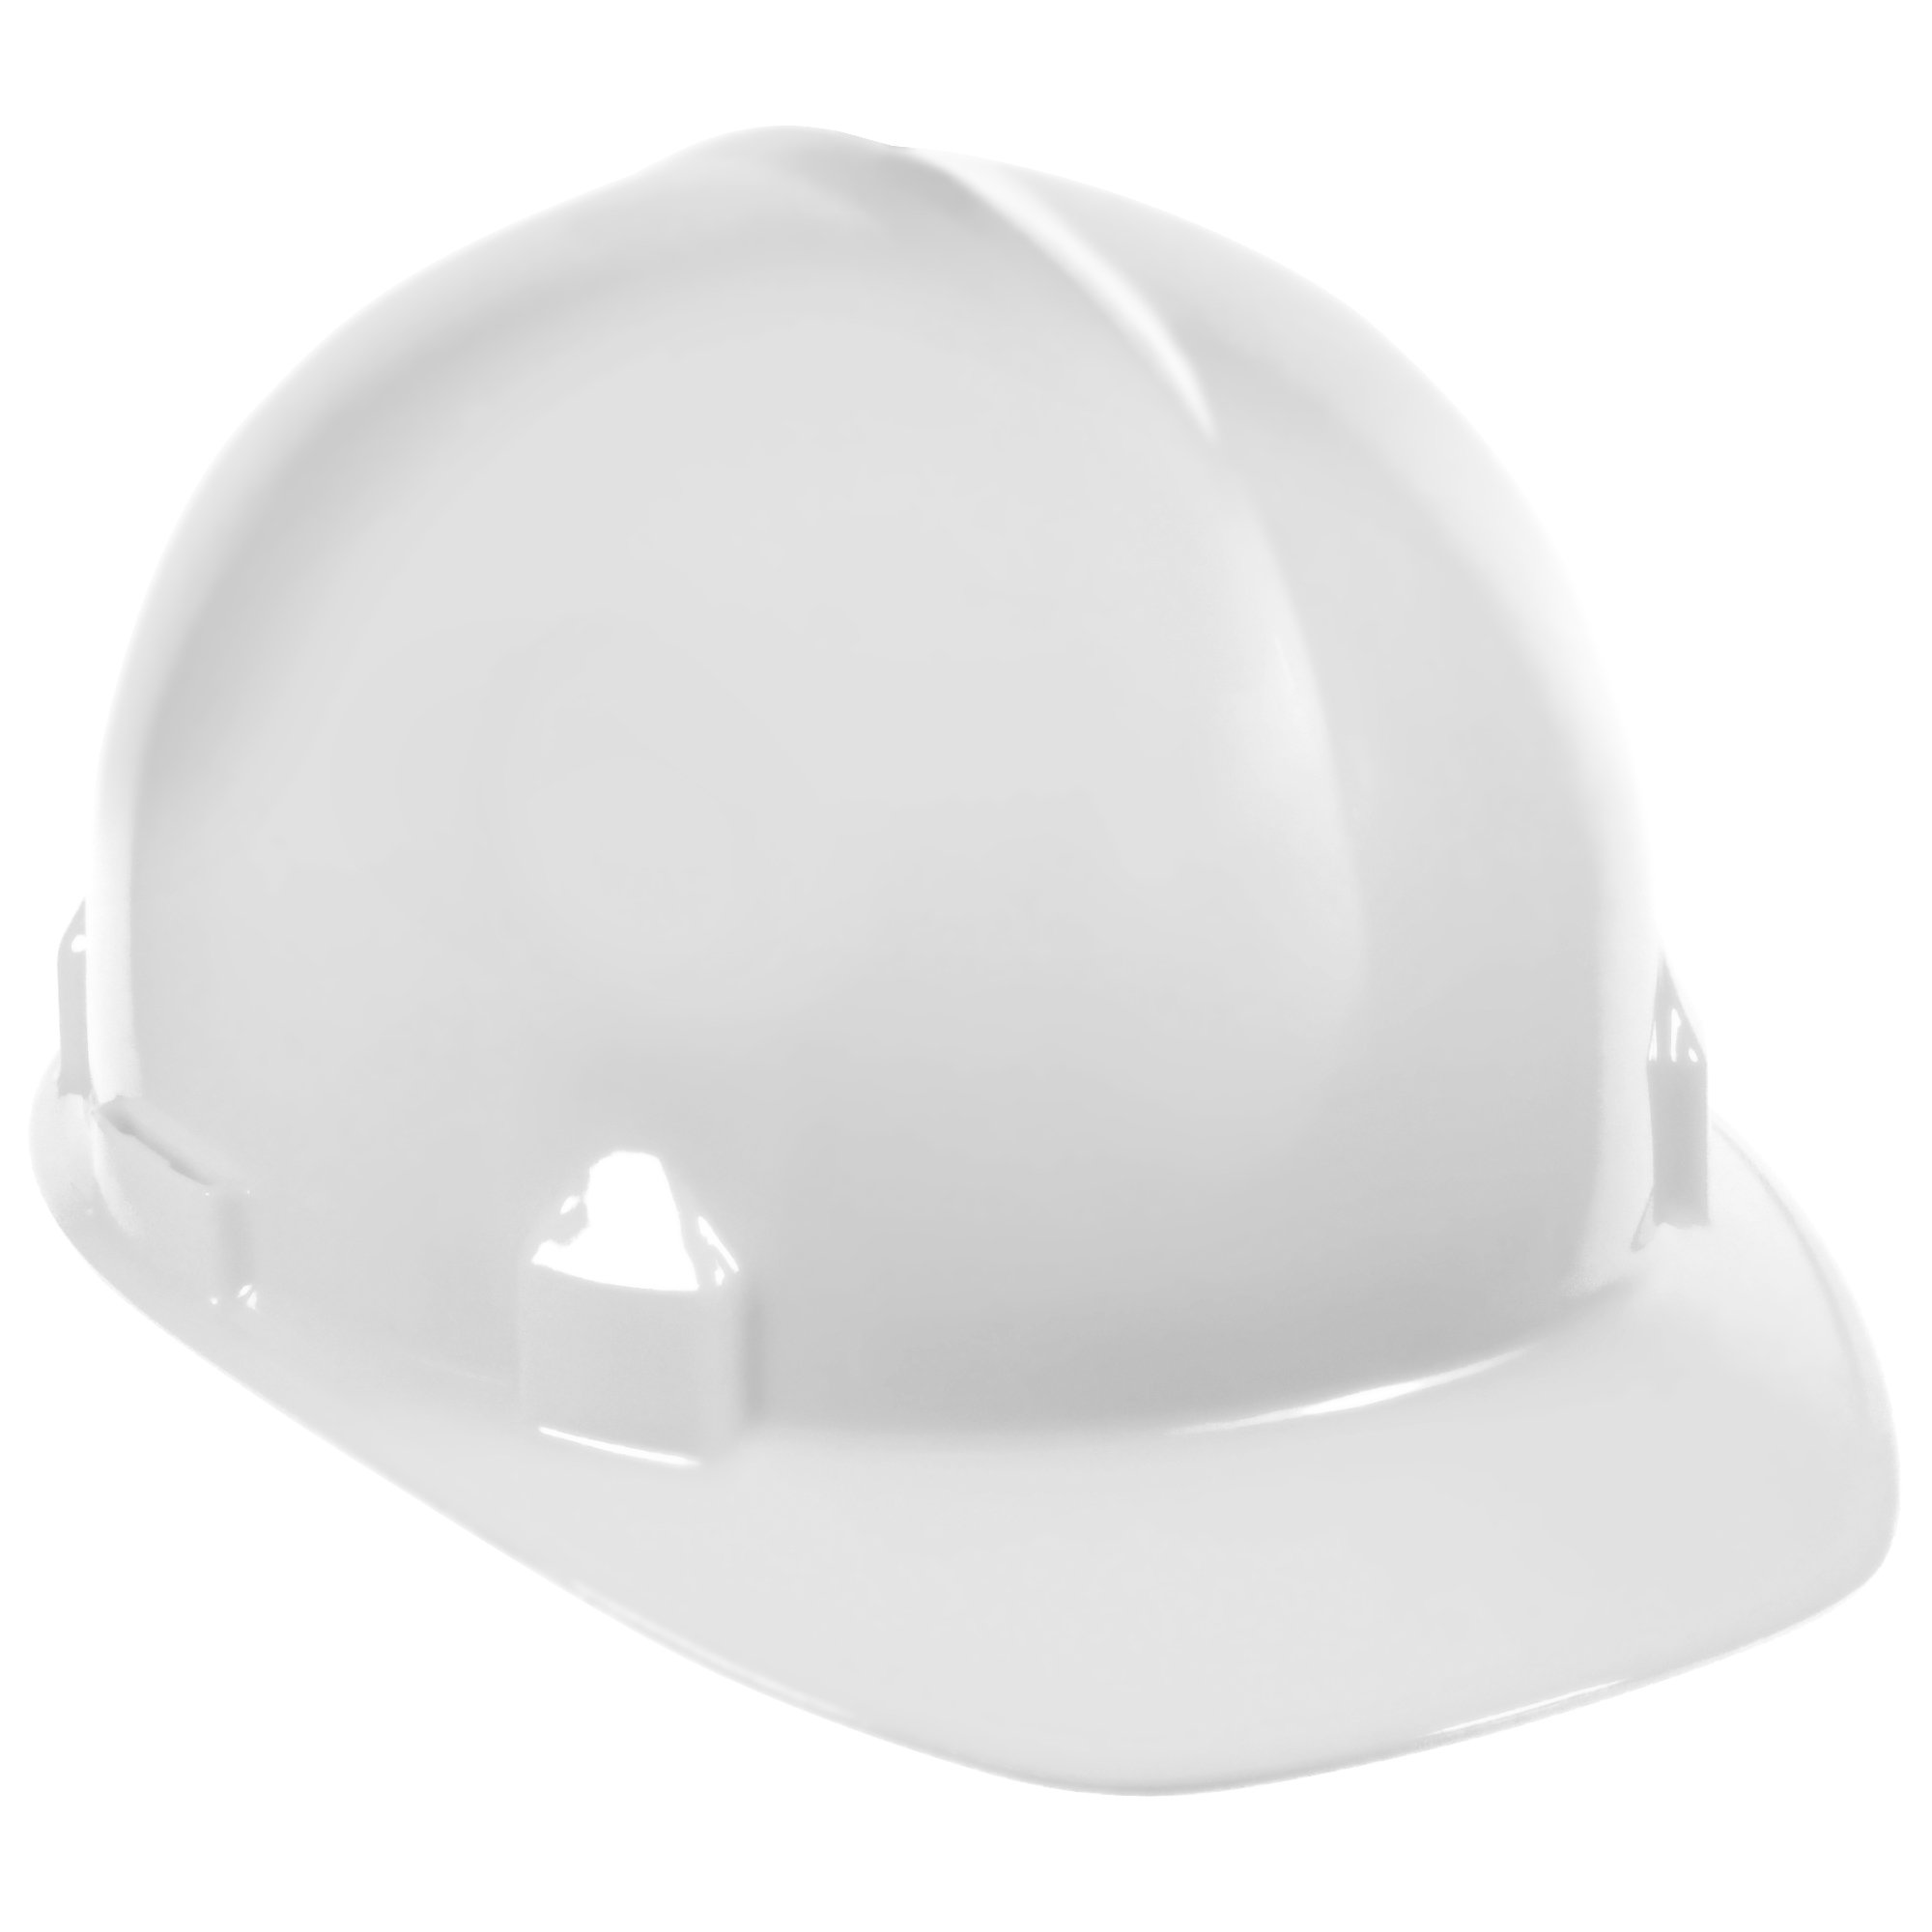 Jackson Safety SC-6 Hard Hat (14834), 4-Point Ratchet Suspension, Smooth Dome, Meets ANSI, White, 12 / Case by Jackson Safety (Image #1)